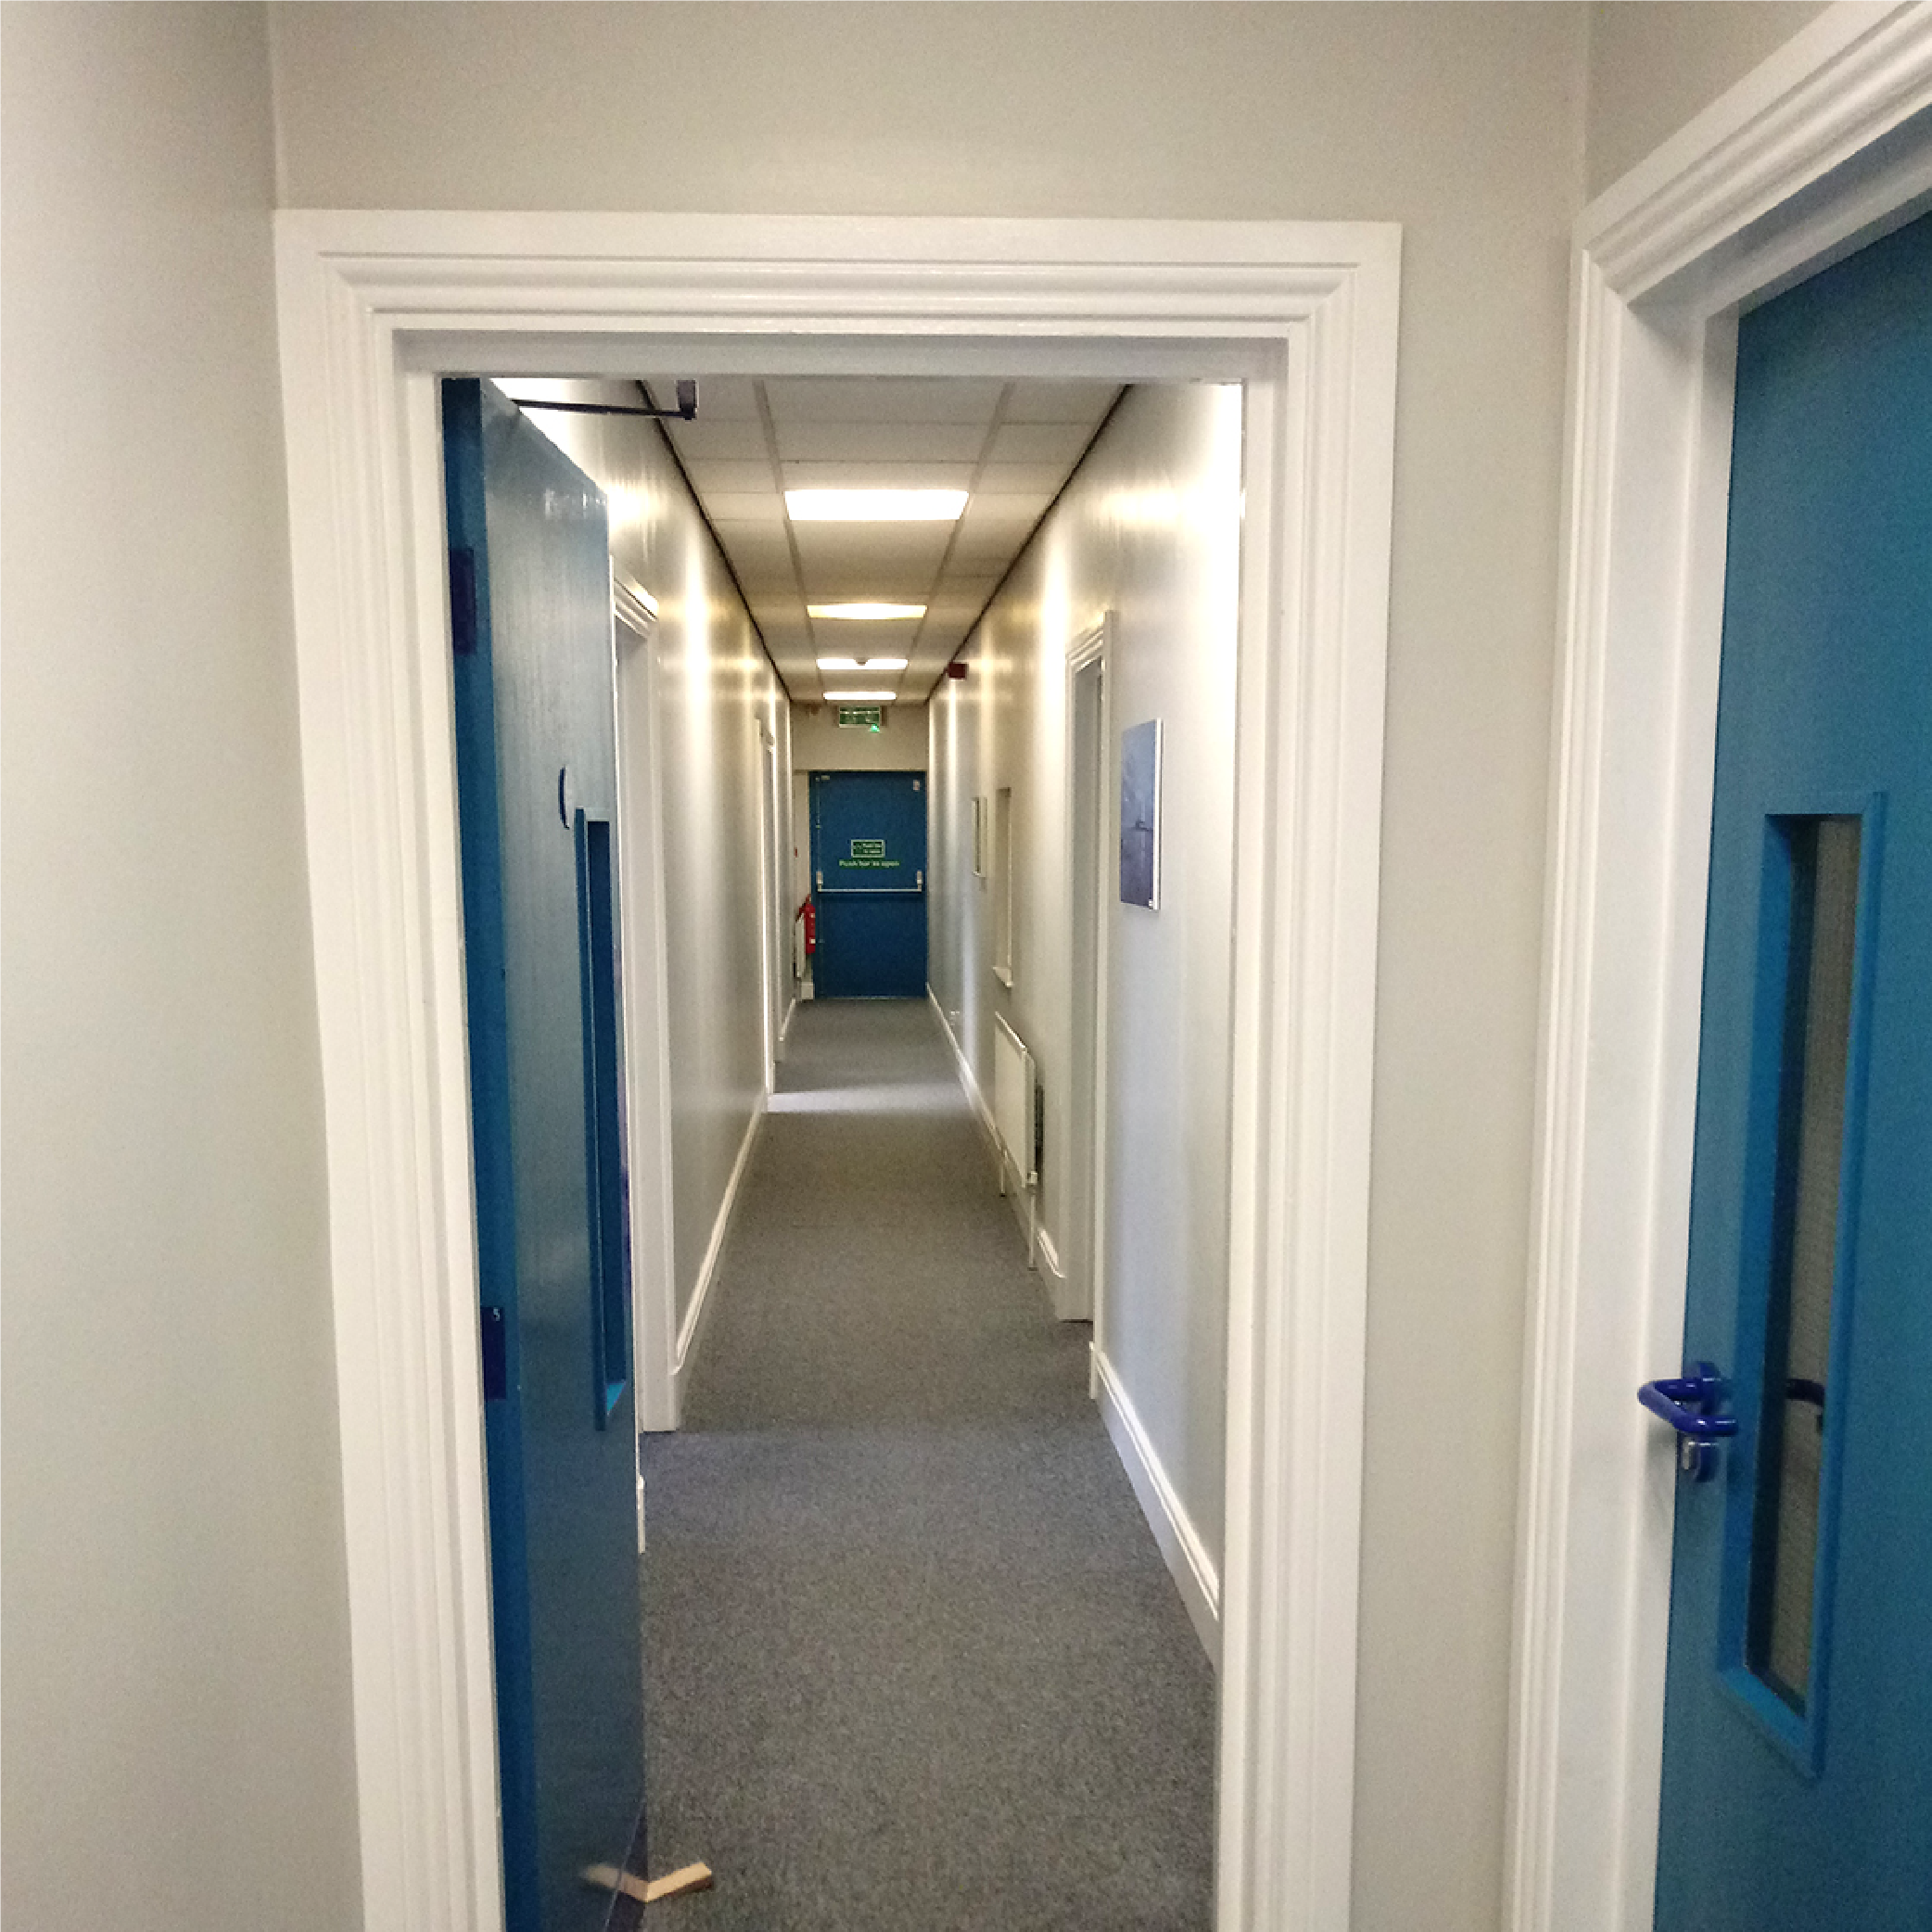 Full office refurbishment including acoustic glass walls